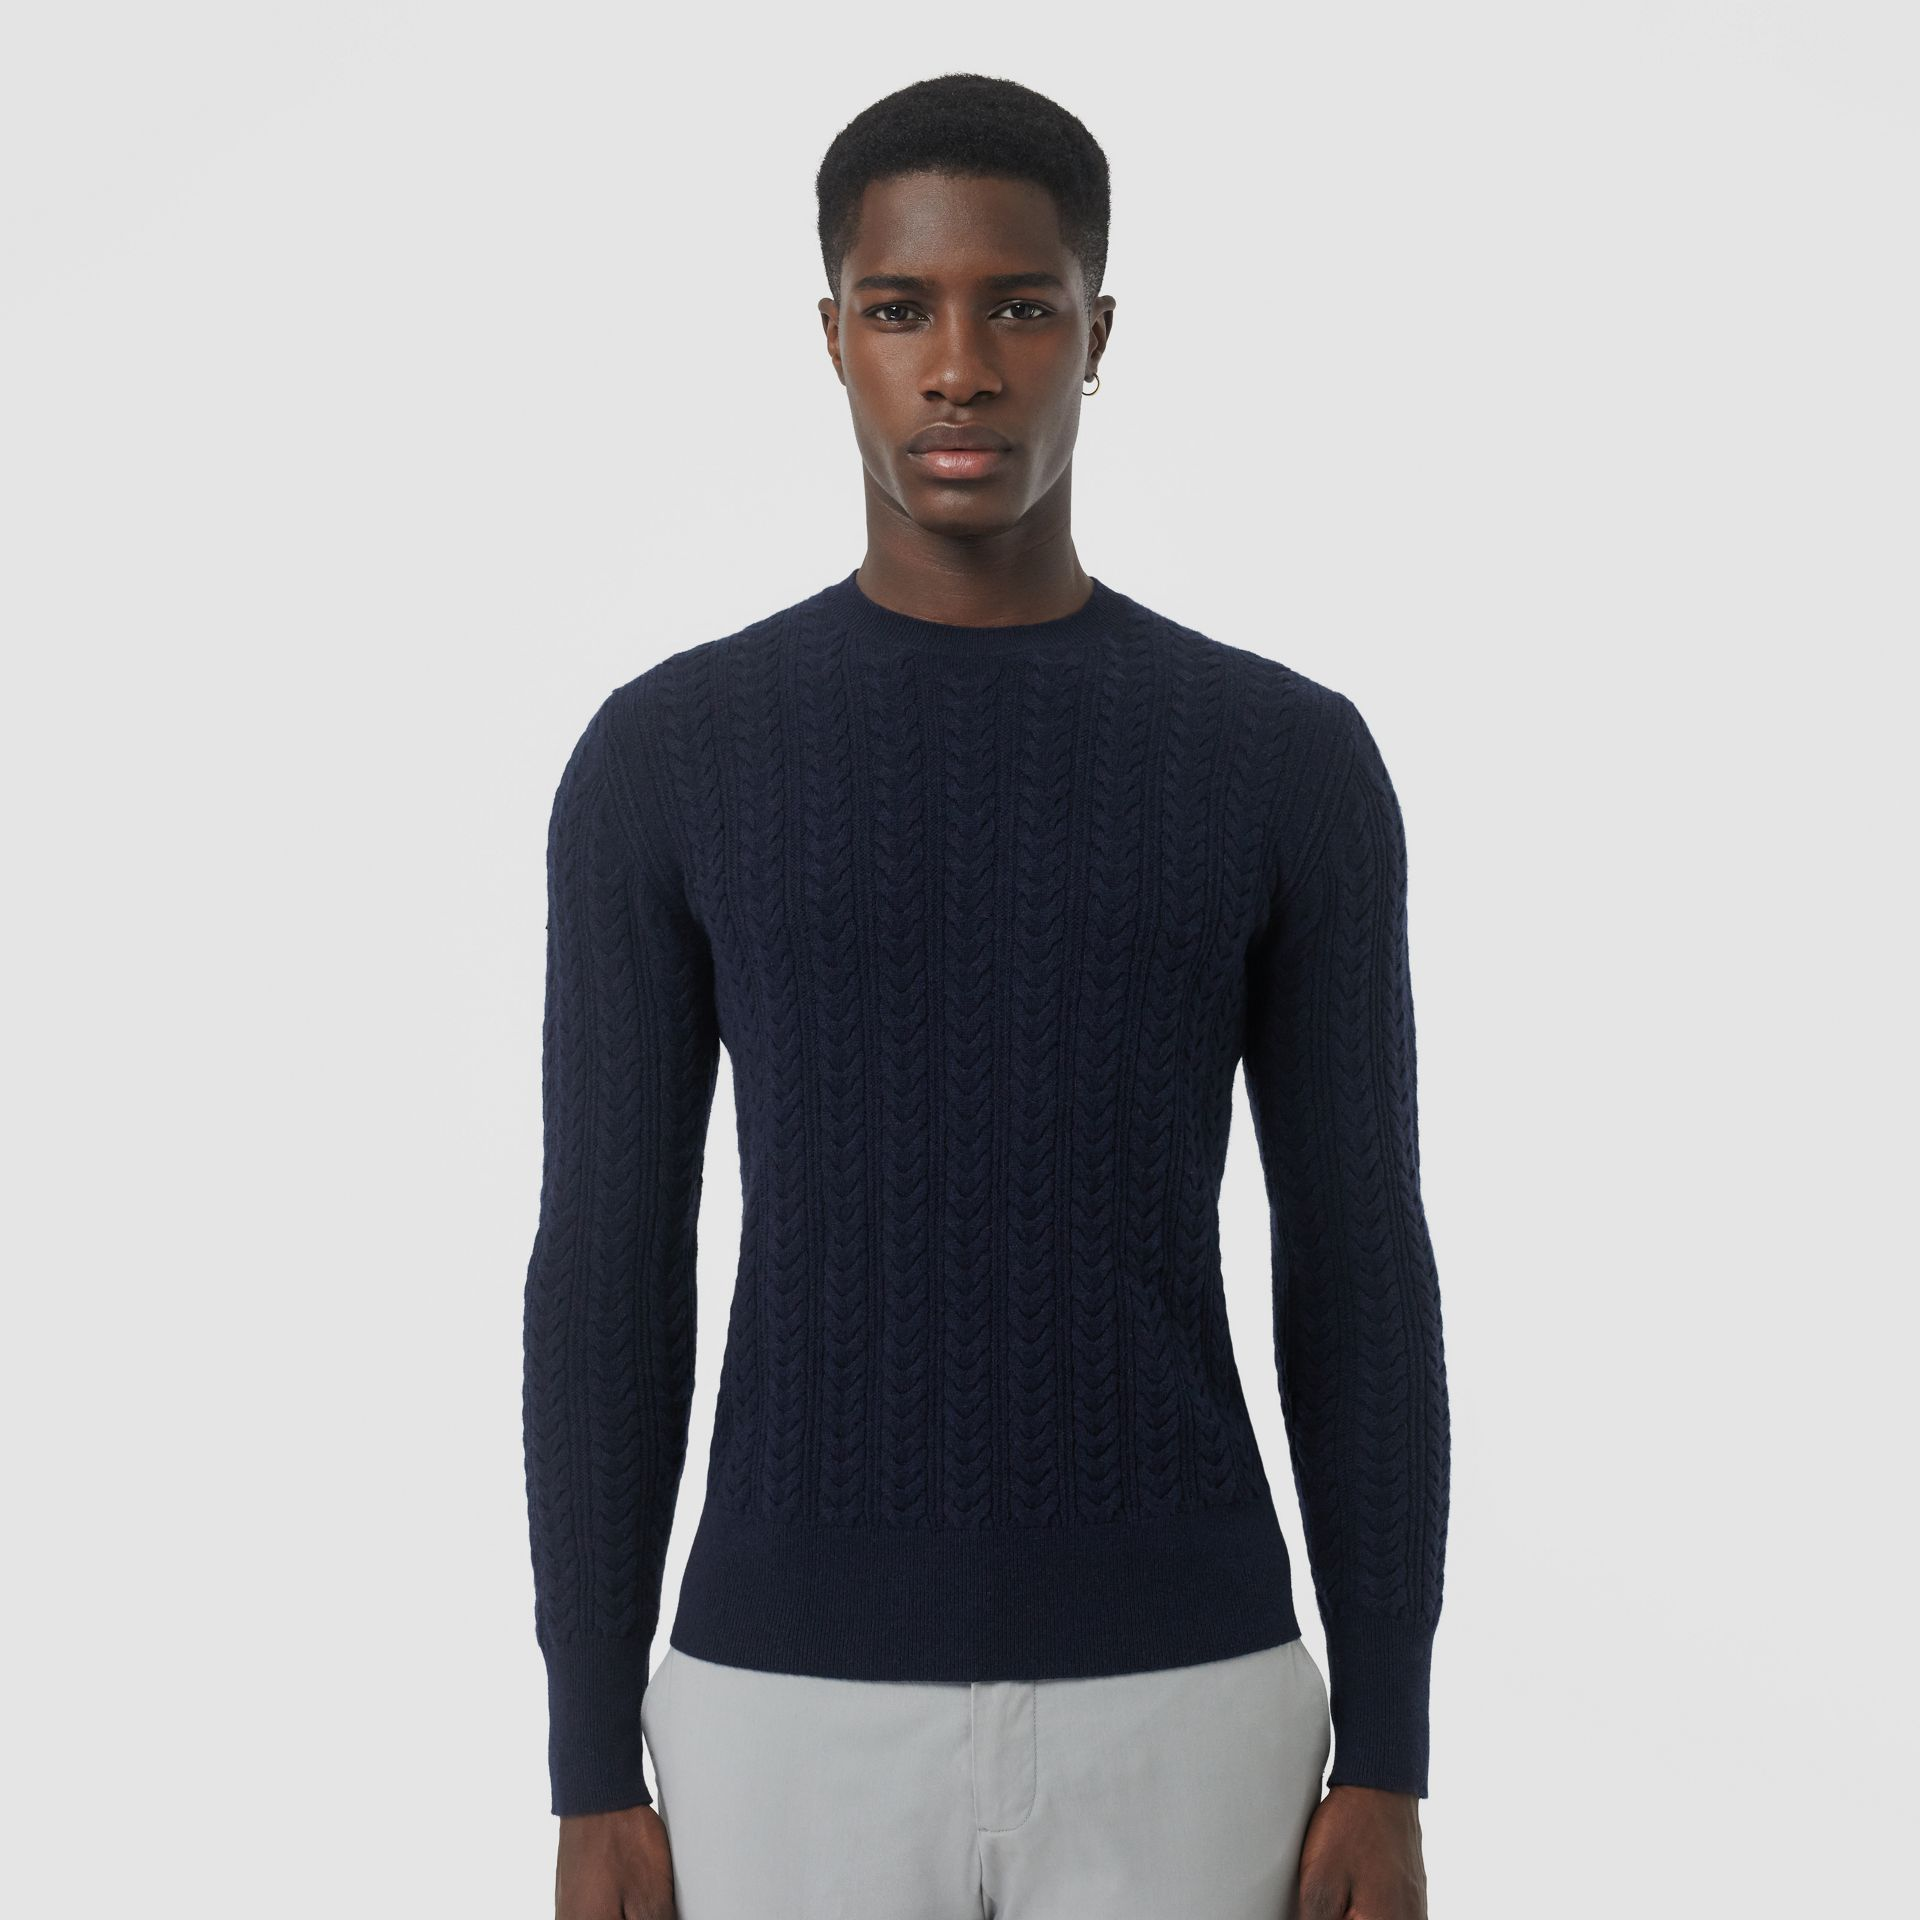 Cable Knit Cashmere Sweater in Navy - Men | Burberry - gallery image 4